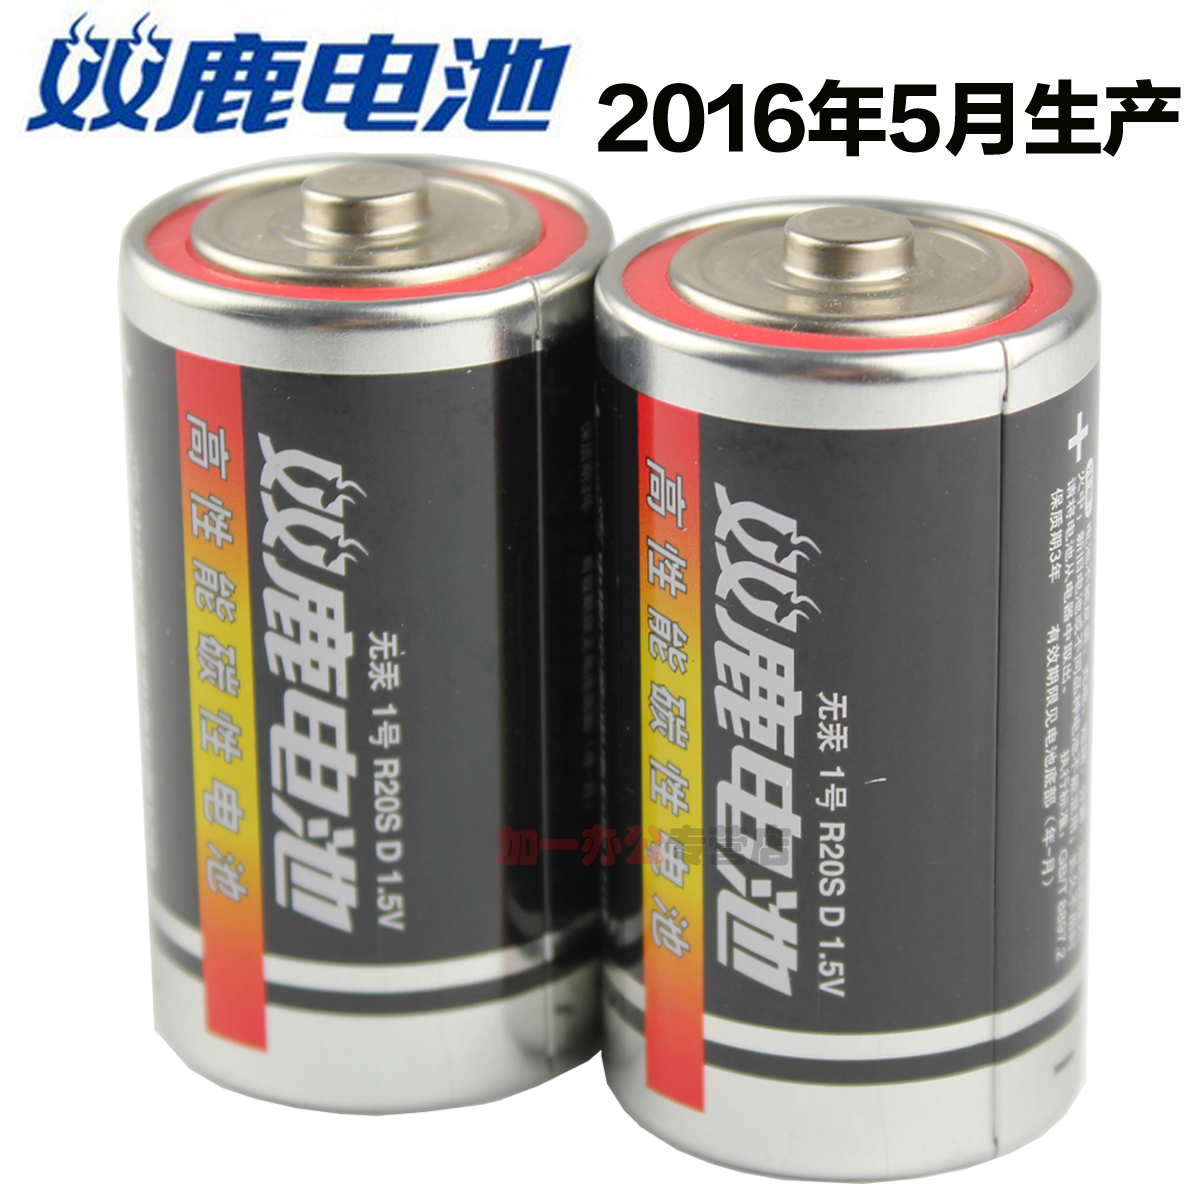 Deer battery on 1 carbon steel batteries coal gas stove heater two price